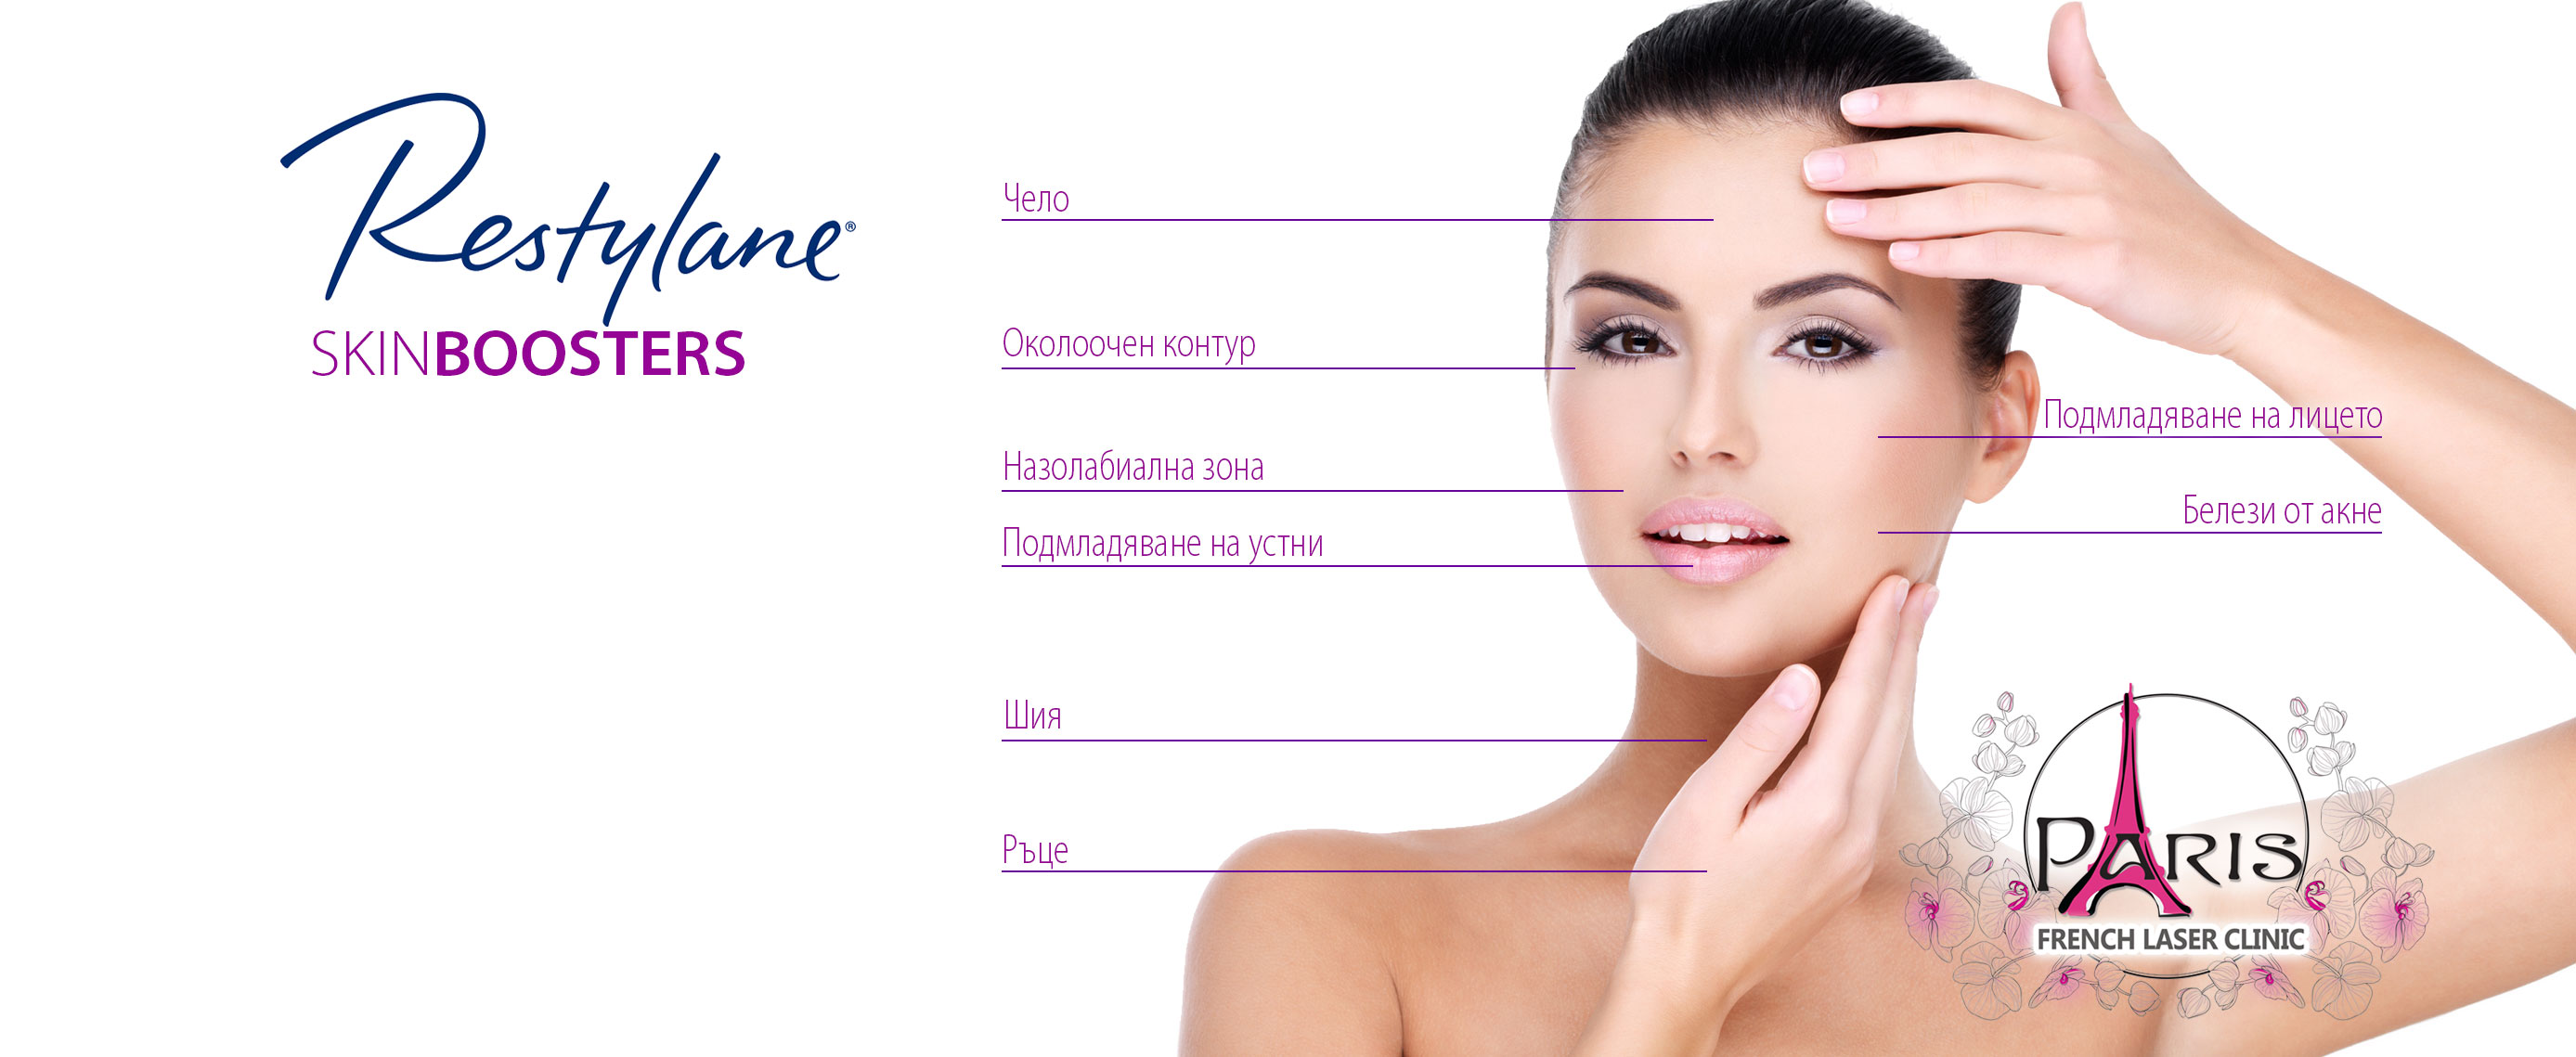 SkinBoosters от Restylane - Мезотерапия